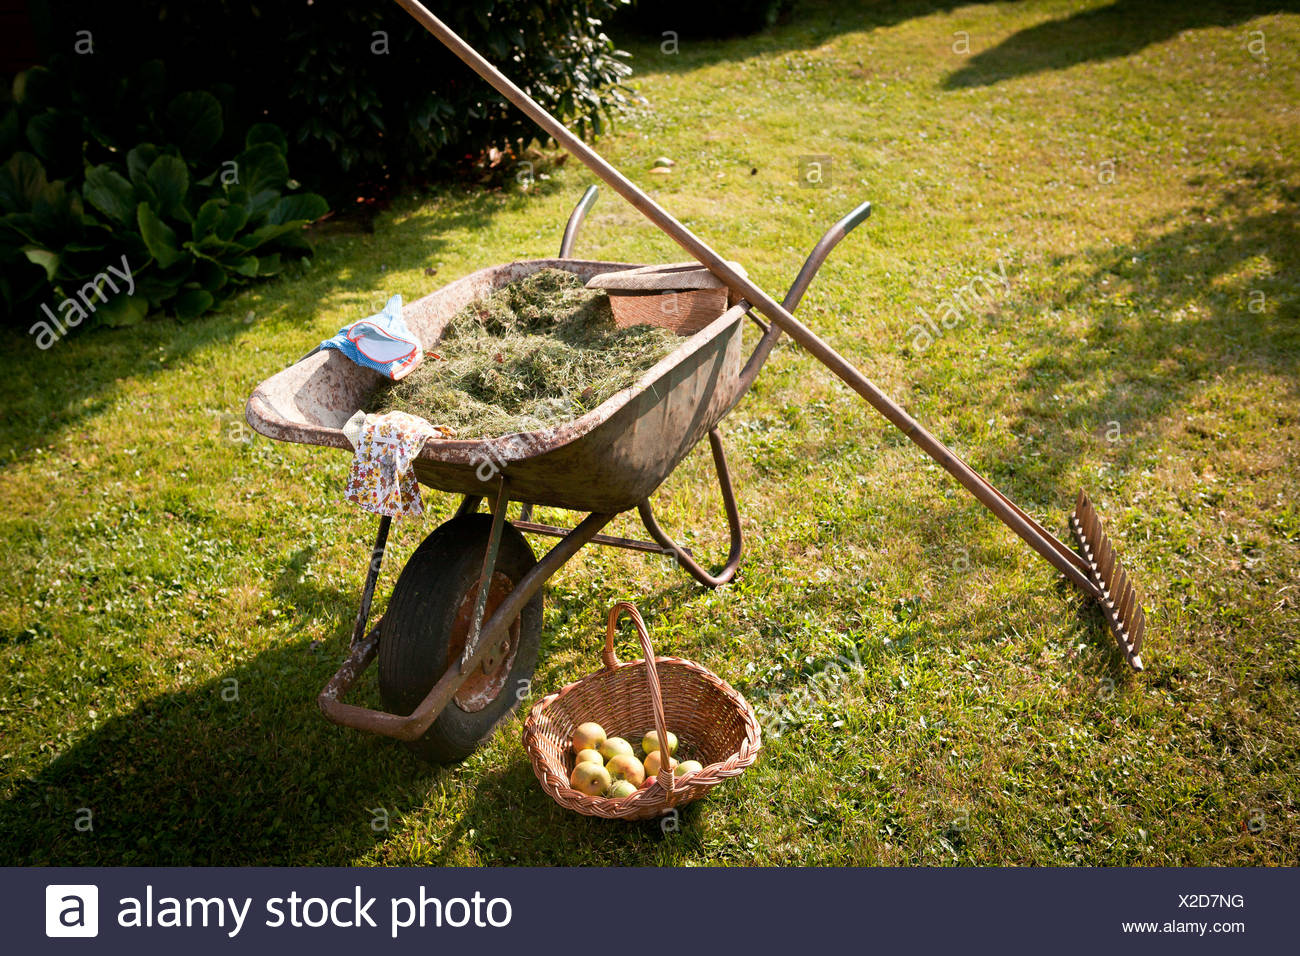 Wheelbarrow full of mown grass in the garden, Munich, Bavaria, Germany - Stock Image